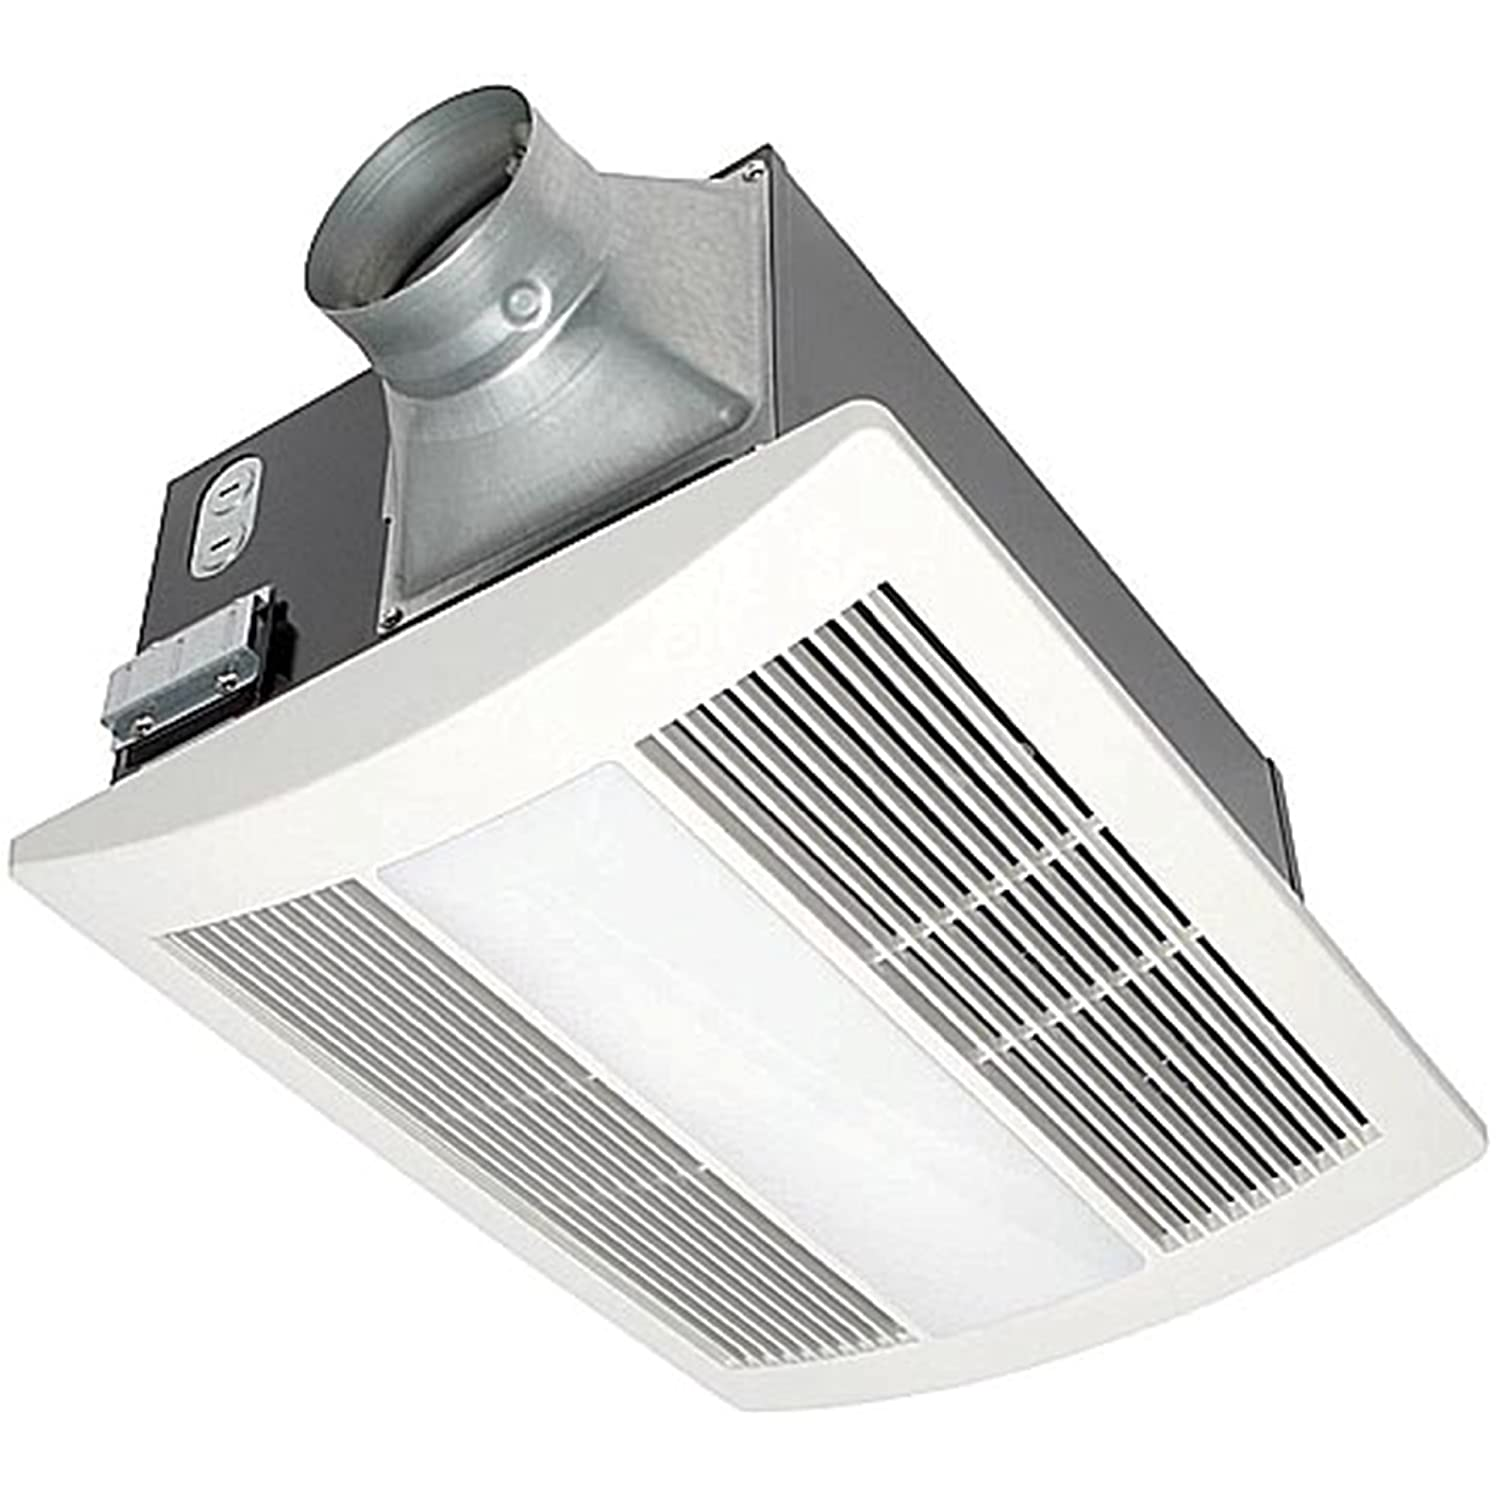 Panasonic Fv 11vh2 Whisper Warm 110 Cfm Ceiling Mounted Fan Heat Common Permanently Electric Space Heater Combination White Cream Heaters